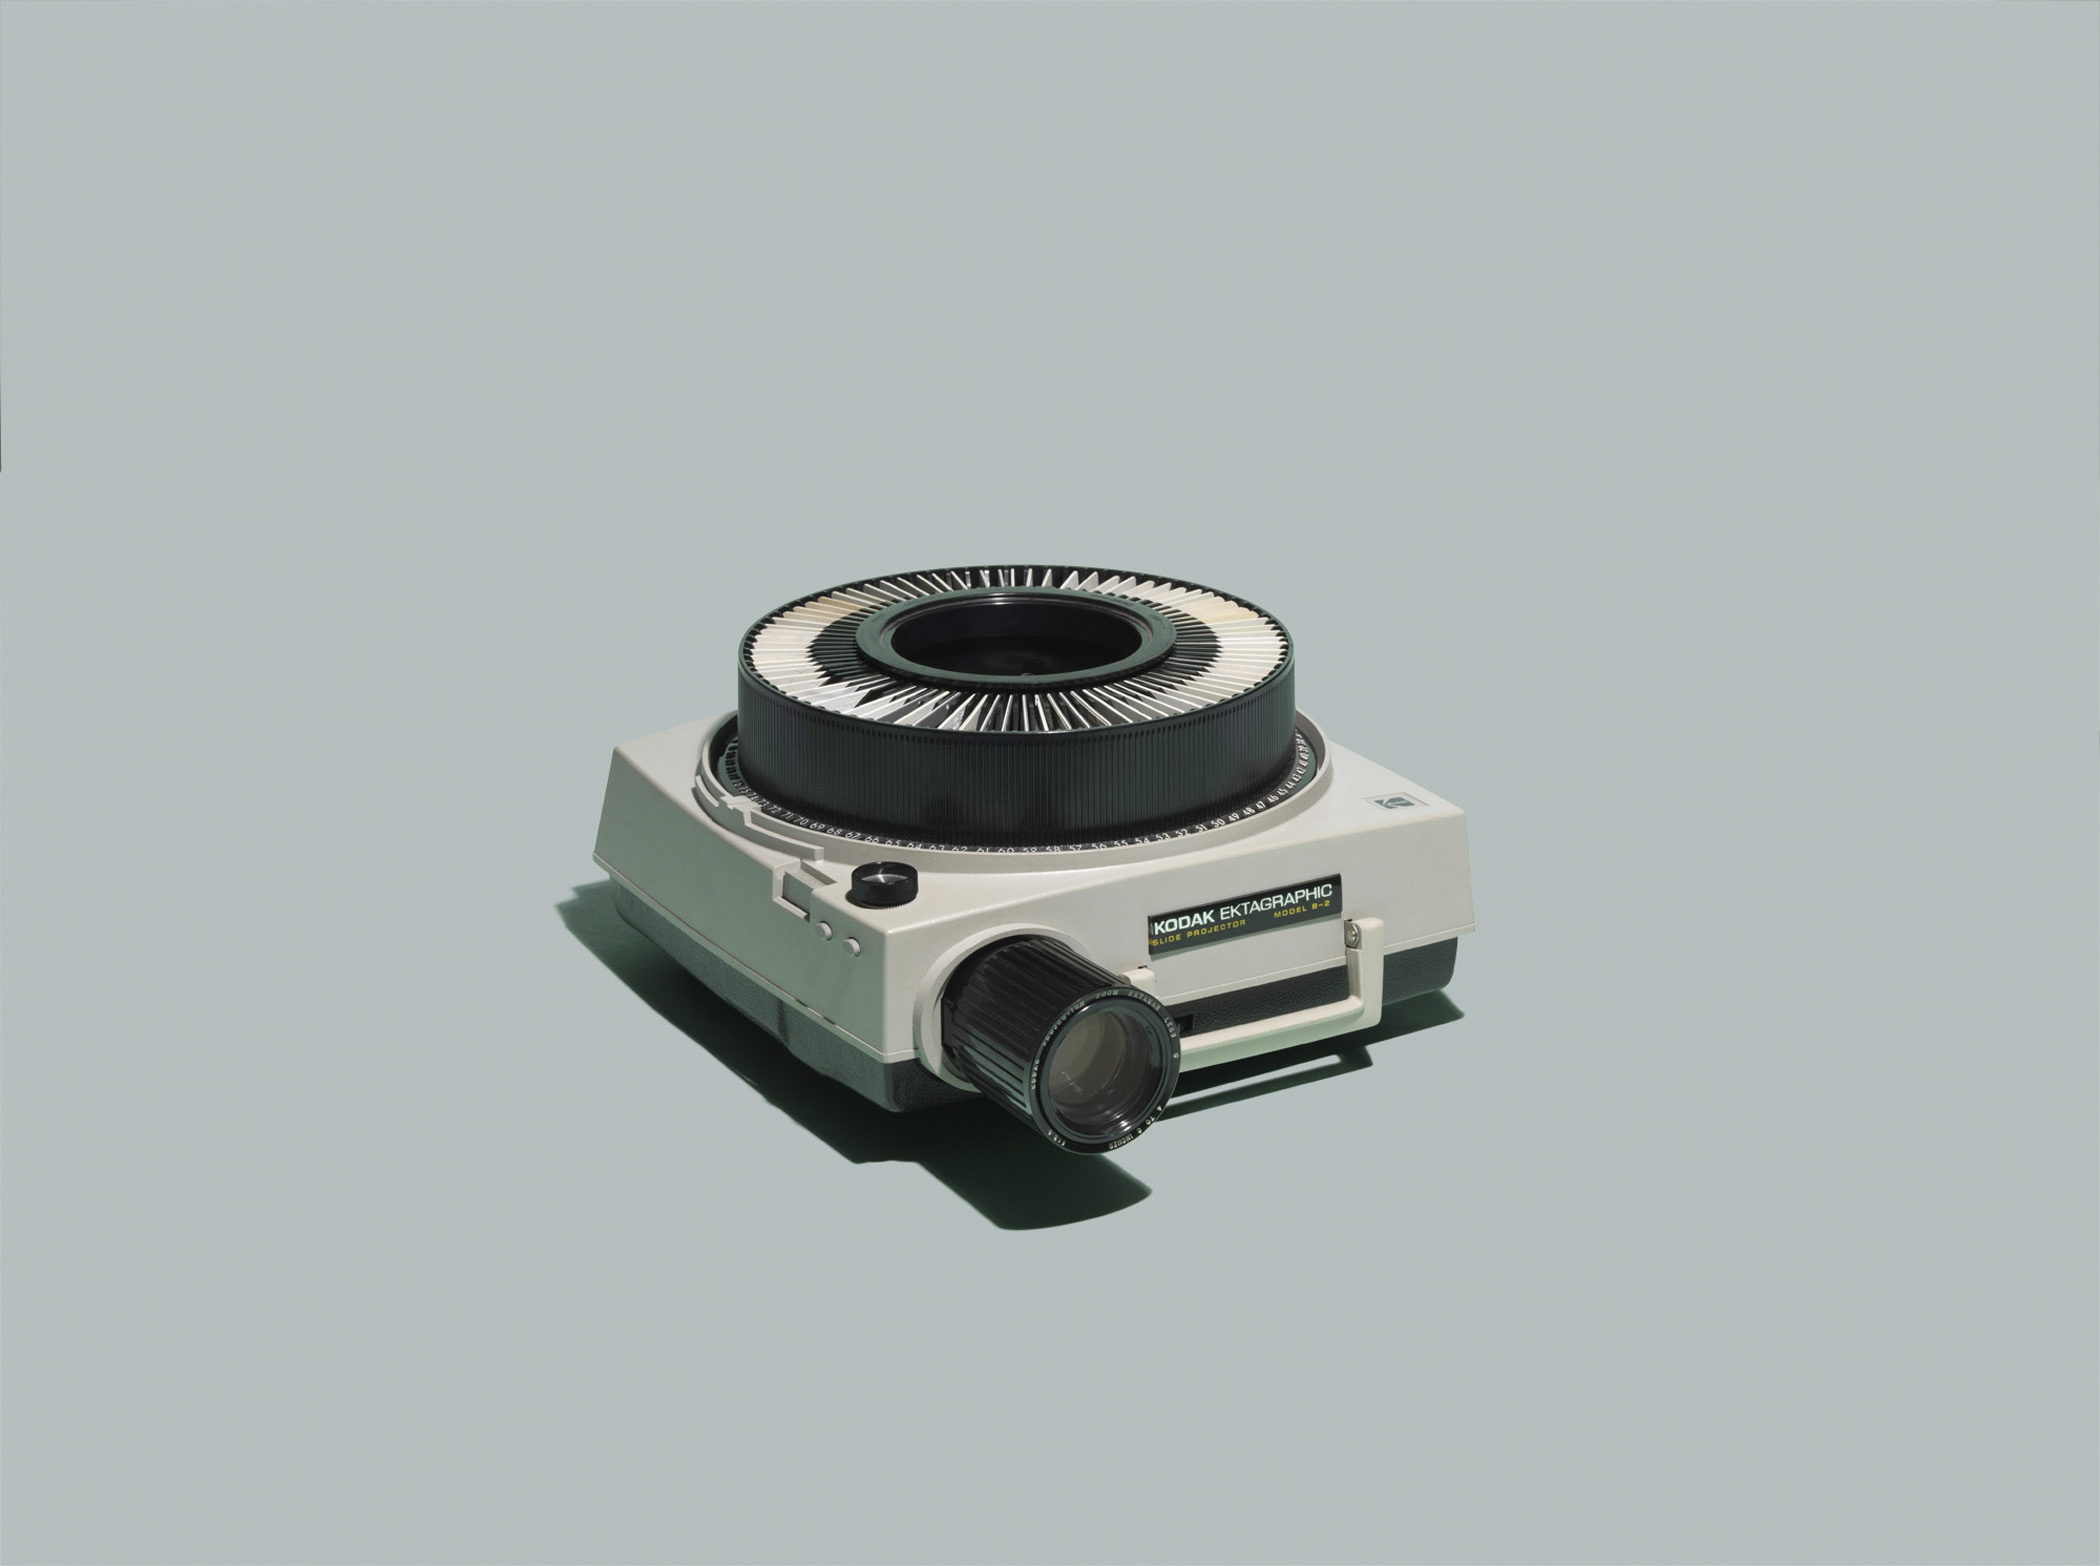 """Kodak Ektagraphic Slide Projector, Model B-2. 1982 List Price: $169, per <a href=""""http://books.google.com/books?id=2Q_myLjG1_0C&amp;pg=PT27&amp;dq=Kodak+Ektagraphic+Slide+Projector,+Model+B-2&amp;hl=en&amp;sa=X&amp;ei=IjkcVOnxCPDhsAT1jYKoBg&amp;ved=0CD0Q6AEwAQ#v=onepage&amp;q=Kodak%20Ektagraphic%20Slide%20Projector%2C%20Model%20B-2&amp;f=false"""" title=""""Popular Photography"""" target=""""_blank"""">Popular Photography</a>.  <strong>Today's equivalent:</strong> MS PowerPoint, part of Microsoft Office 365 Personal. List Price: $69.99, available at <a href=""""http://bit.ly/YYjlFX"""" title=""""Best Buy"""" target=""""_blank"""">Best Buy</a>."""